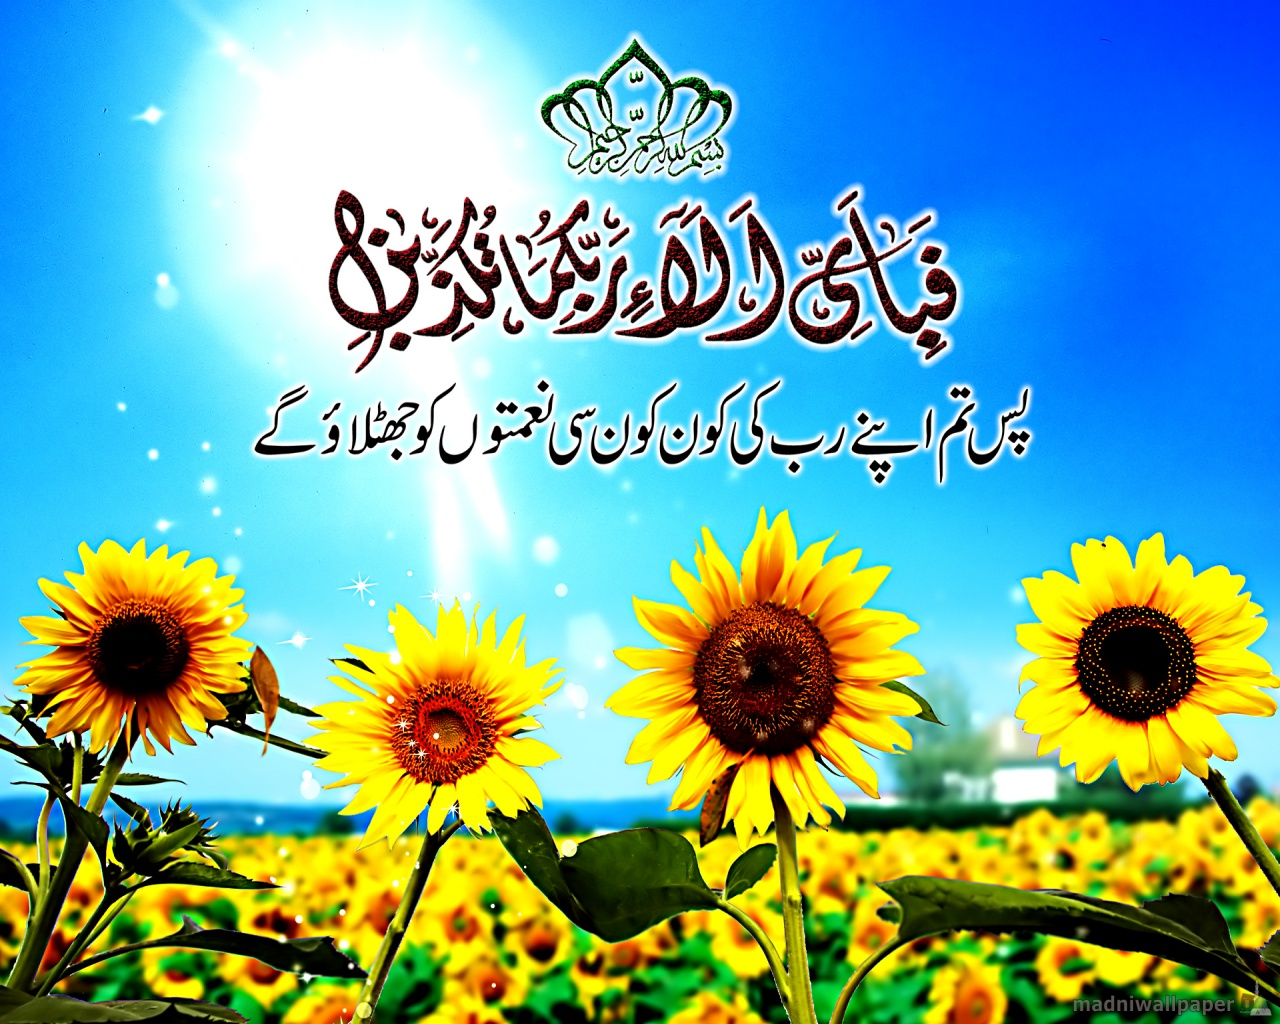 Surah Rahman Beautiful Verse Ayat Sun Flower Islamic ...